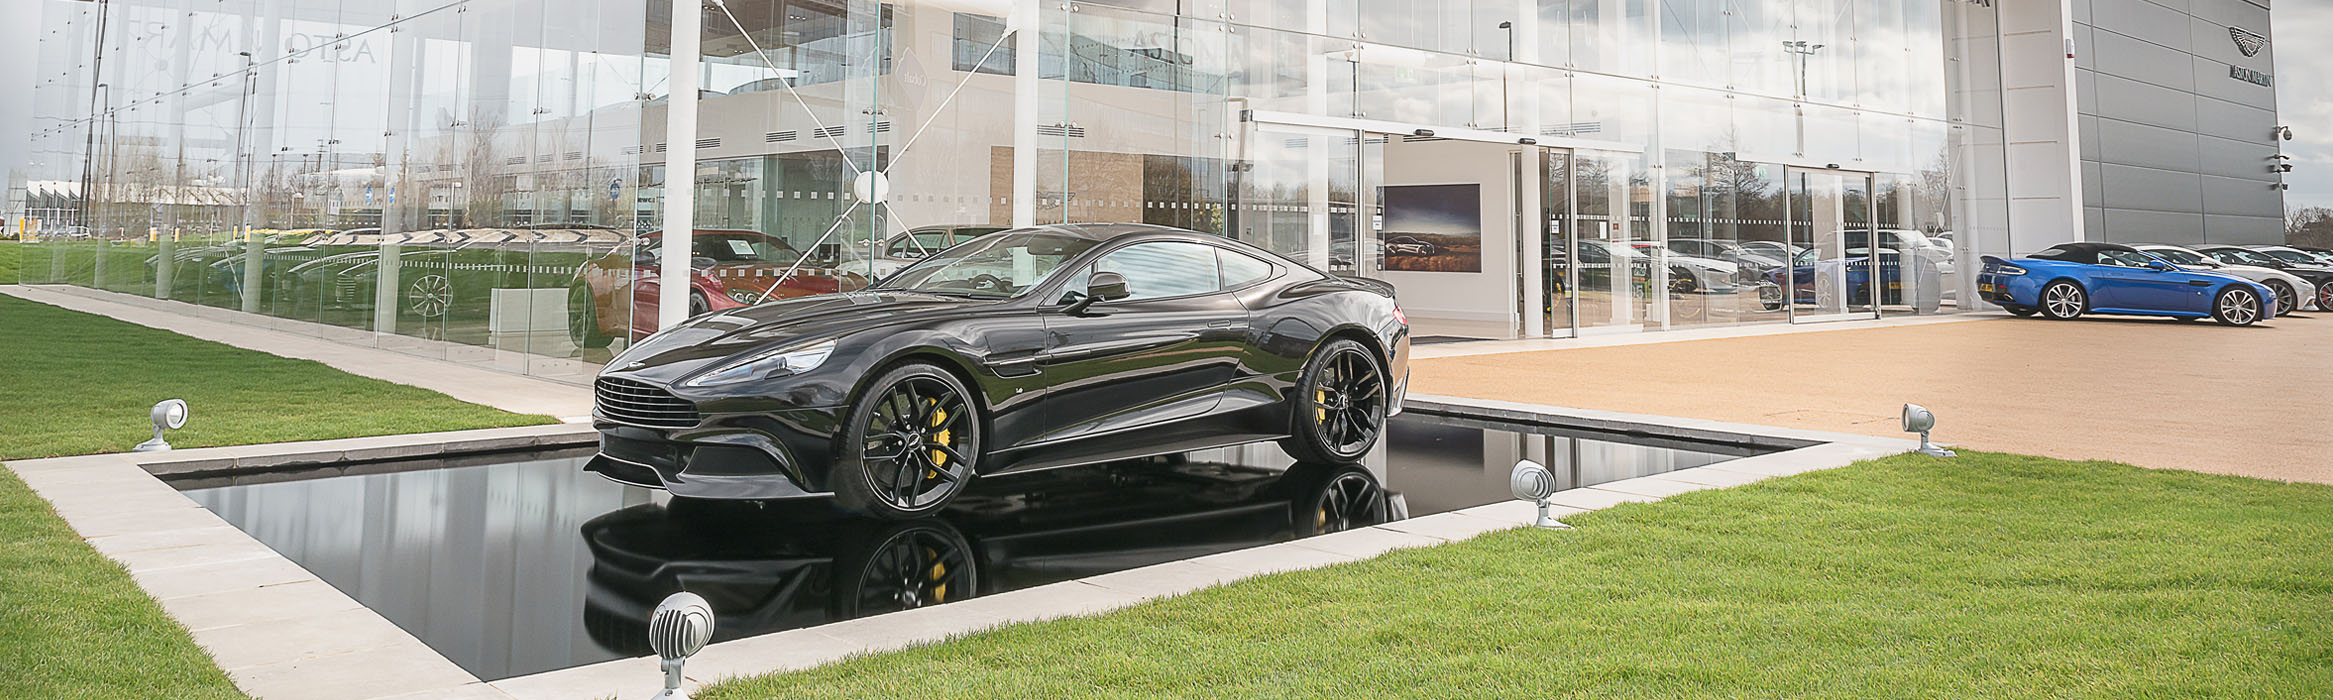 Aston Martin Newcastle